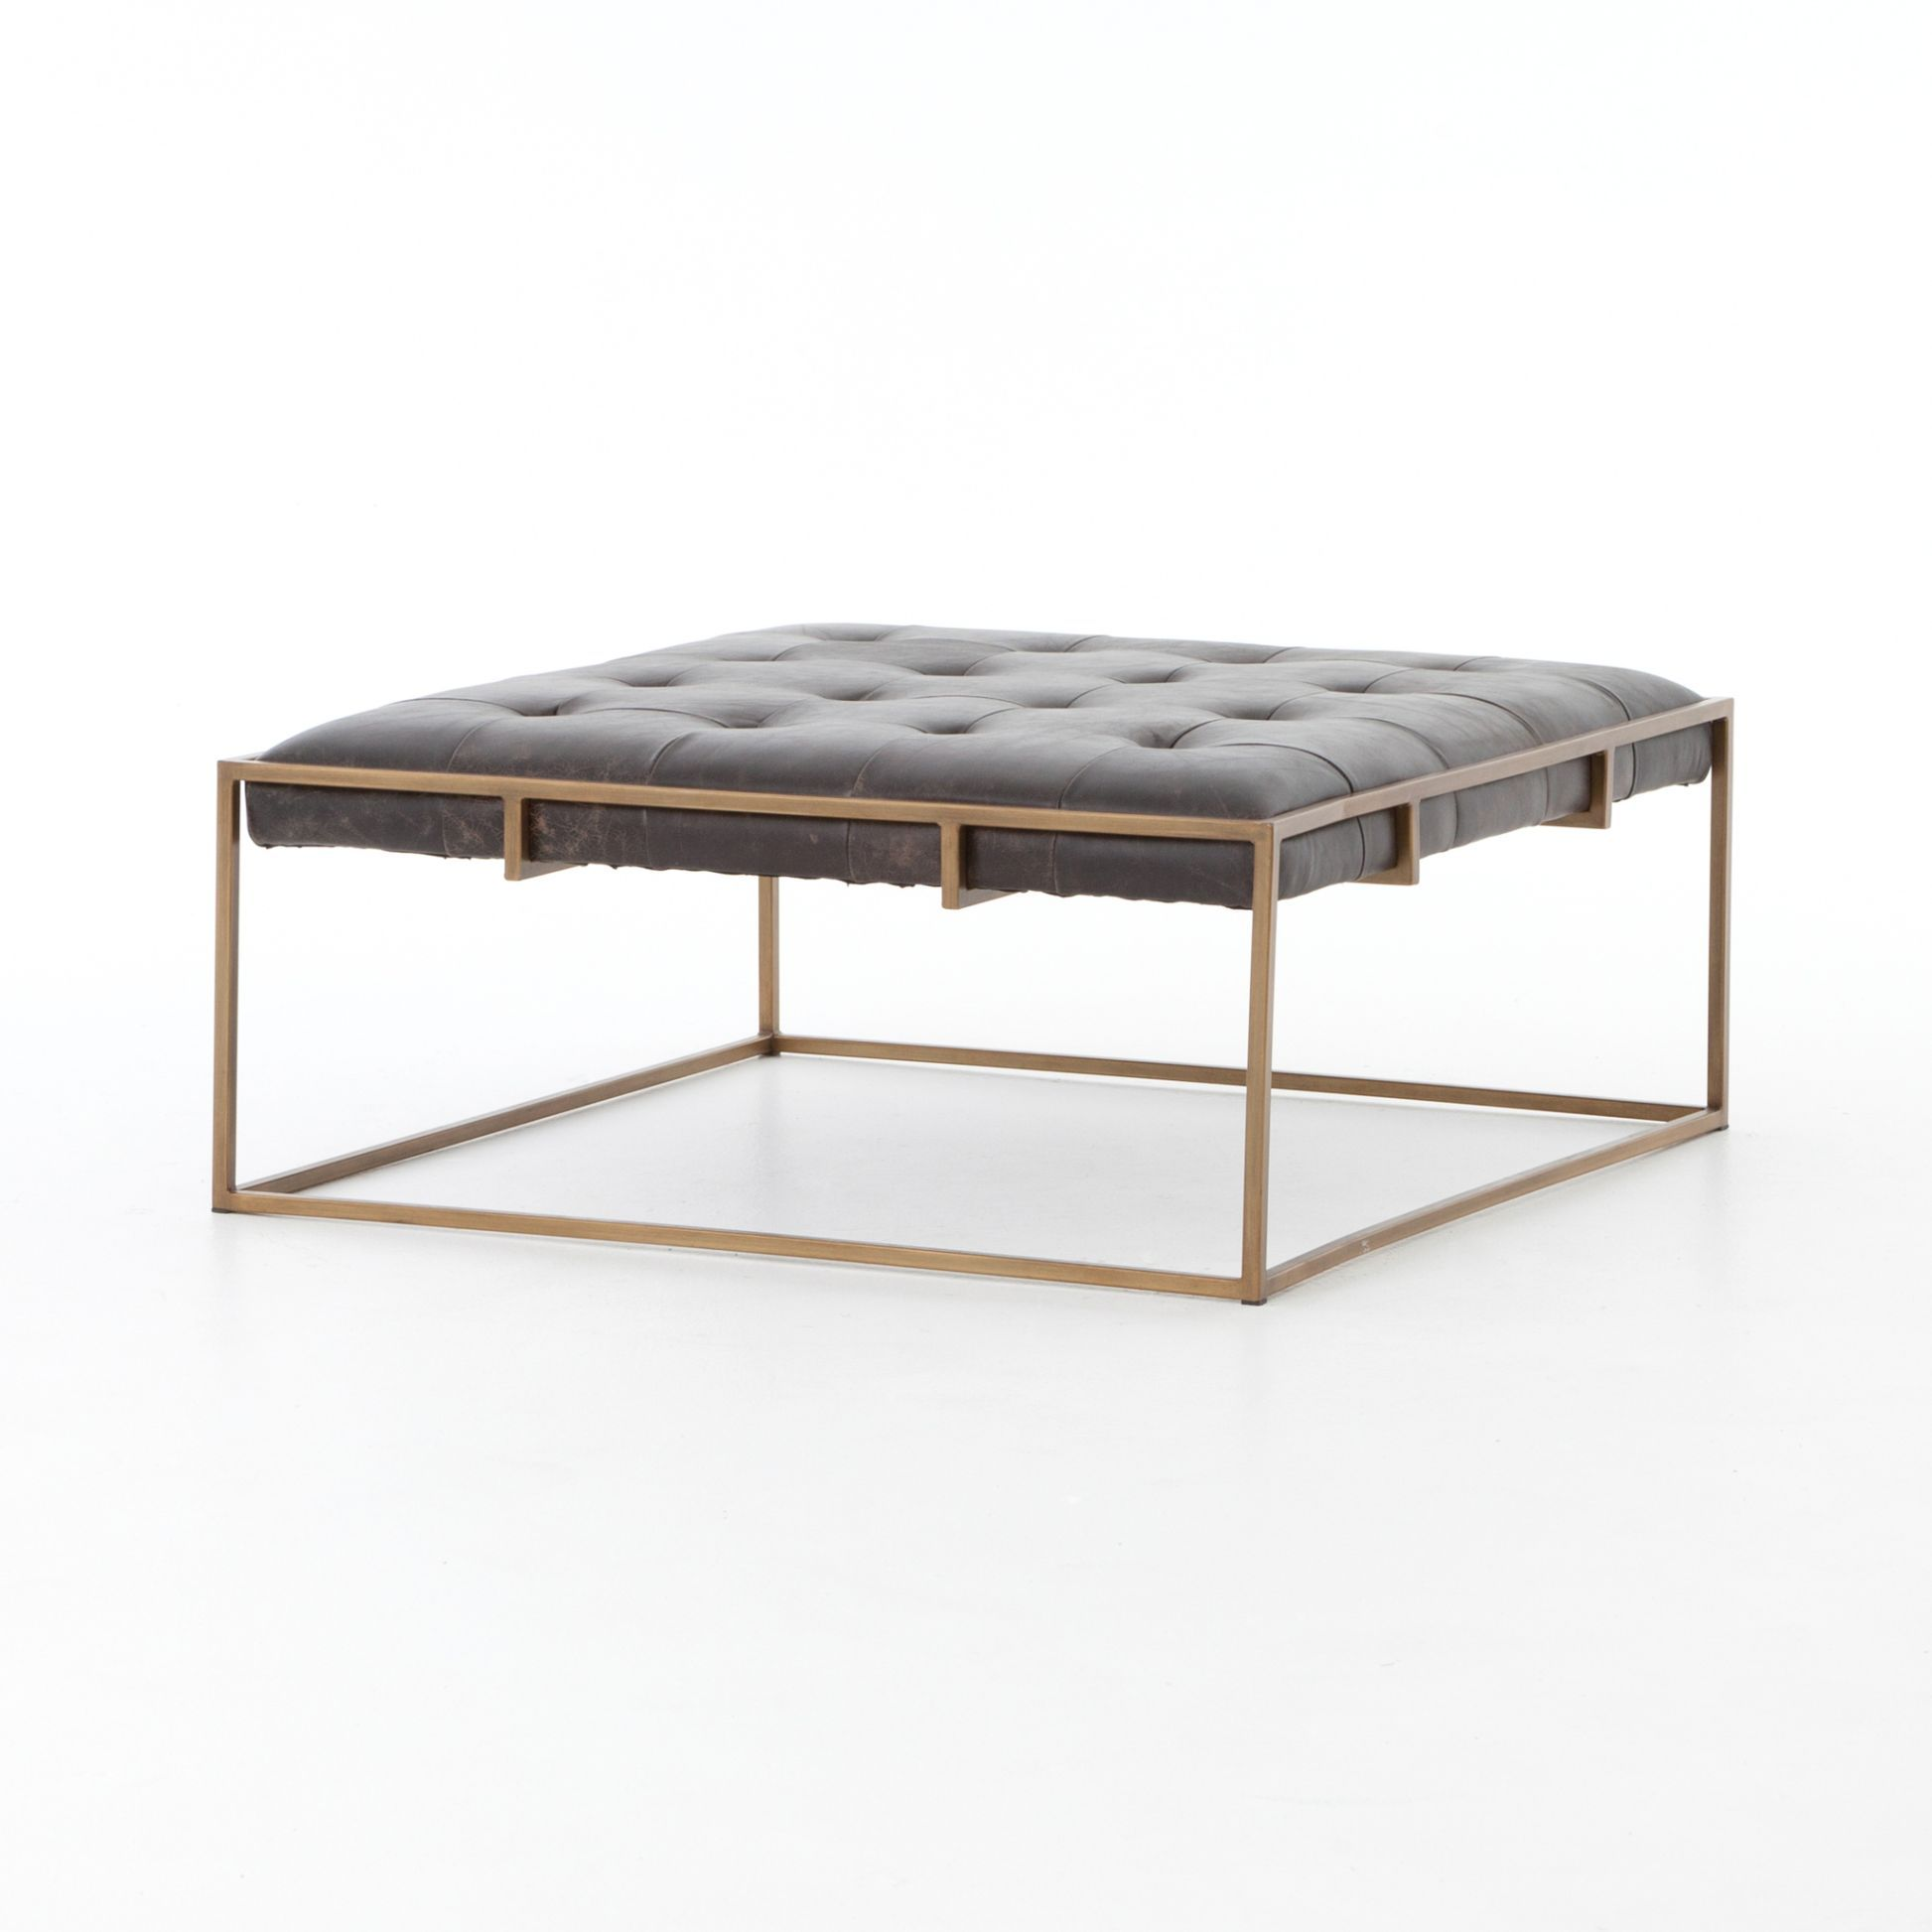 Square Tufted Leather Coffee Table Ottoman with Aged Brass